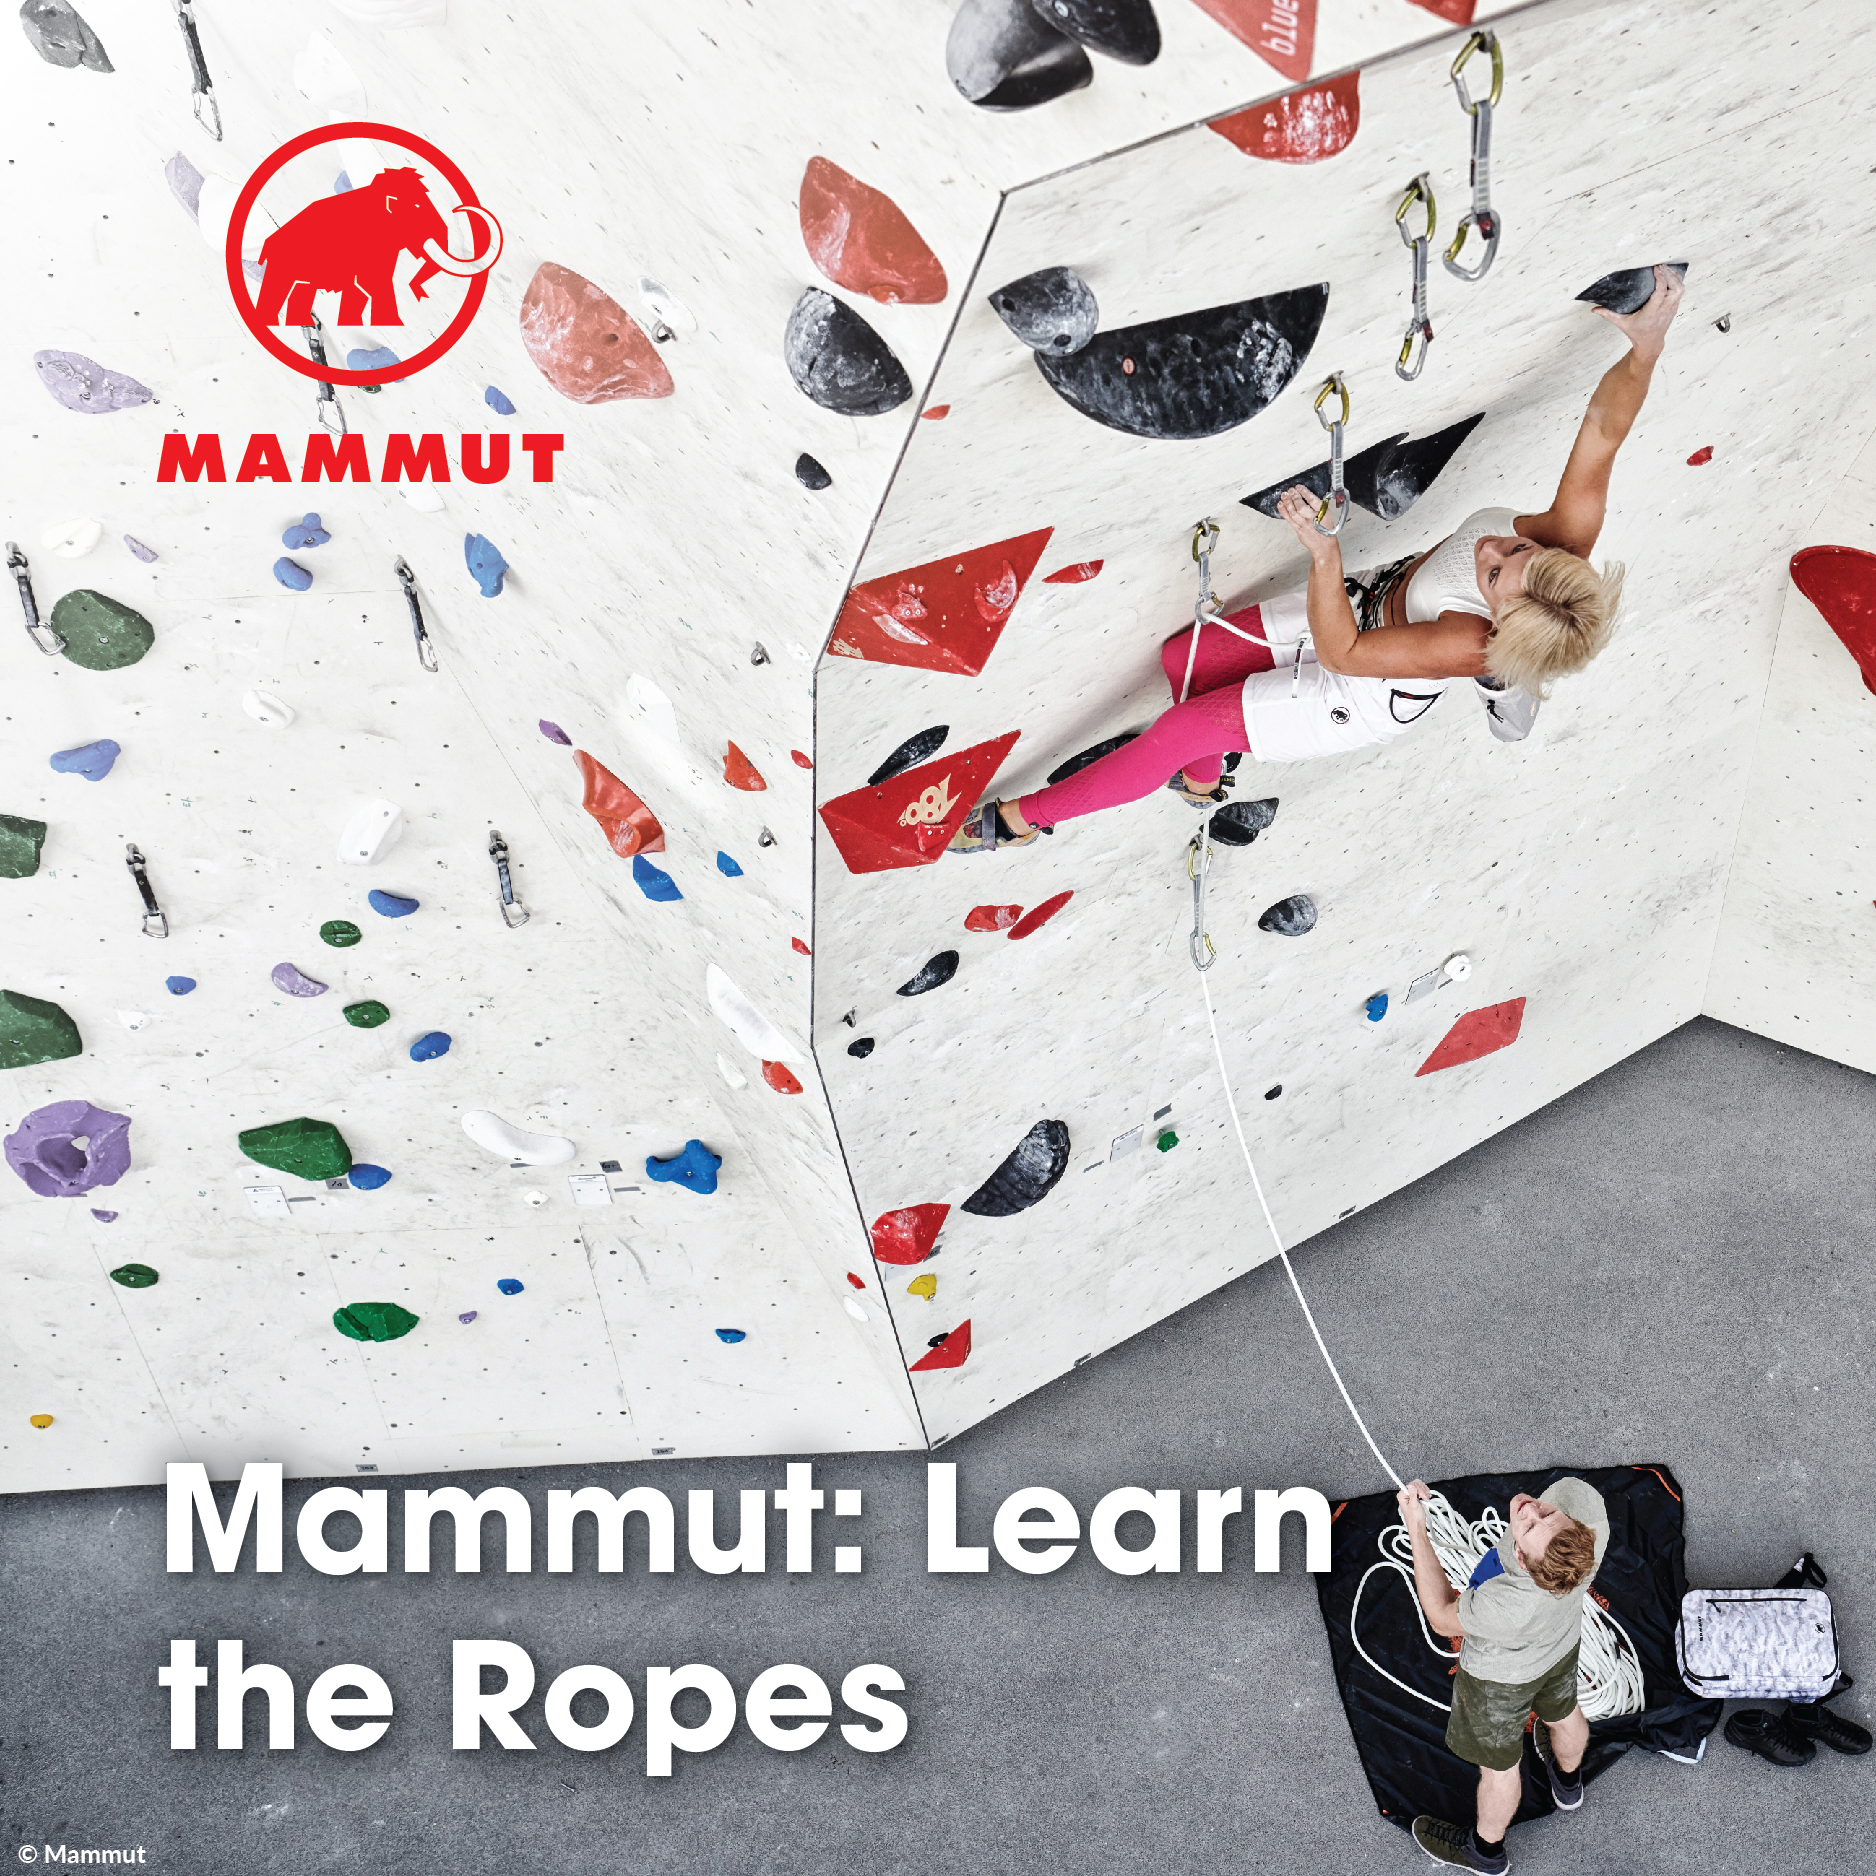 Mammut: Learn the Ropes